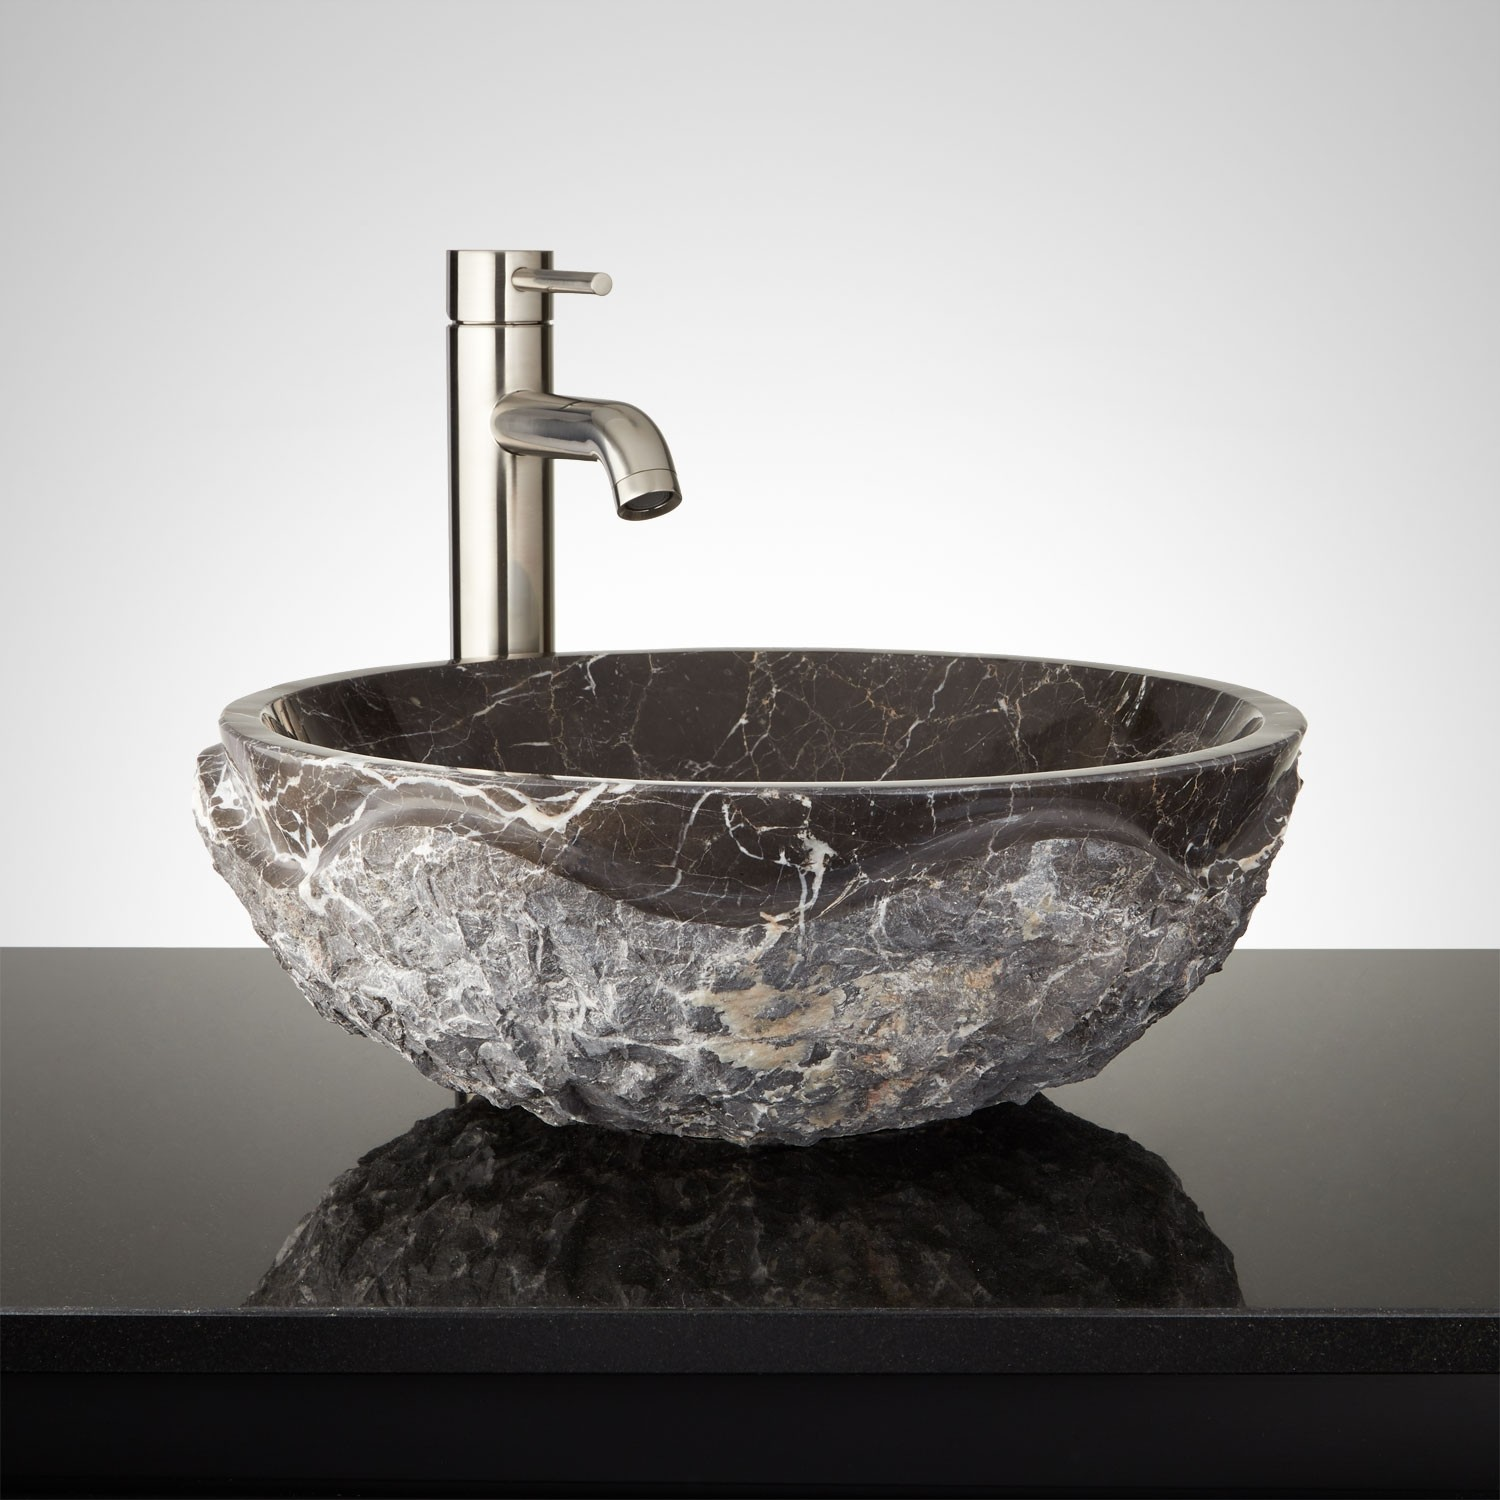 Truckload from Signature Hardware of Unmanifested Sinks, Faucets, Showers, Mirrors & More, Est. Retail $220,230, Erlanger, KY